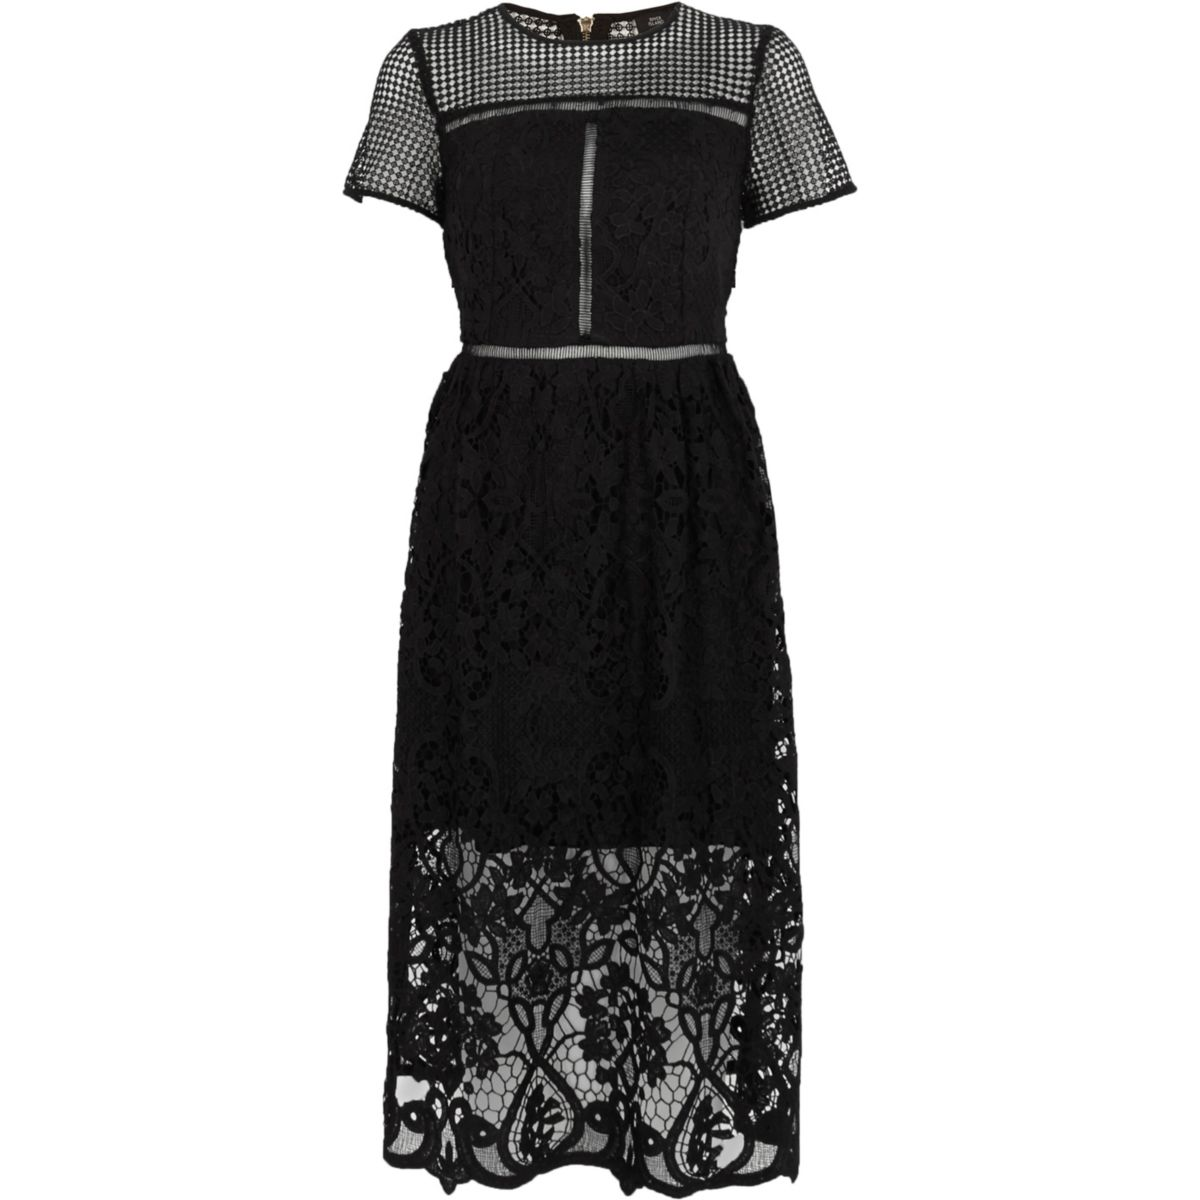 Black floral lace waisted midi dress